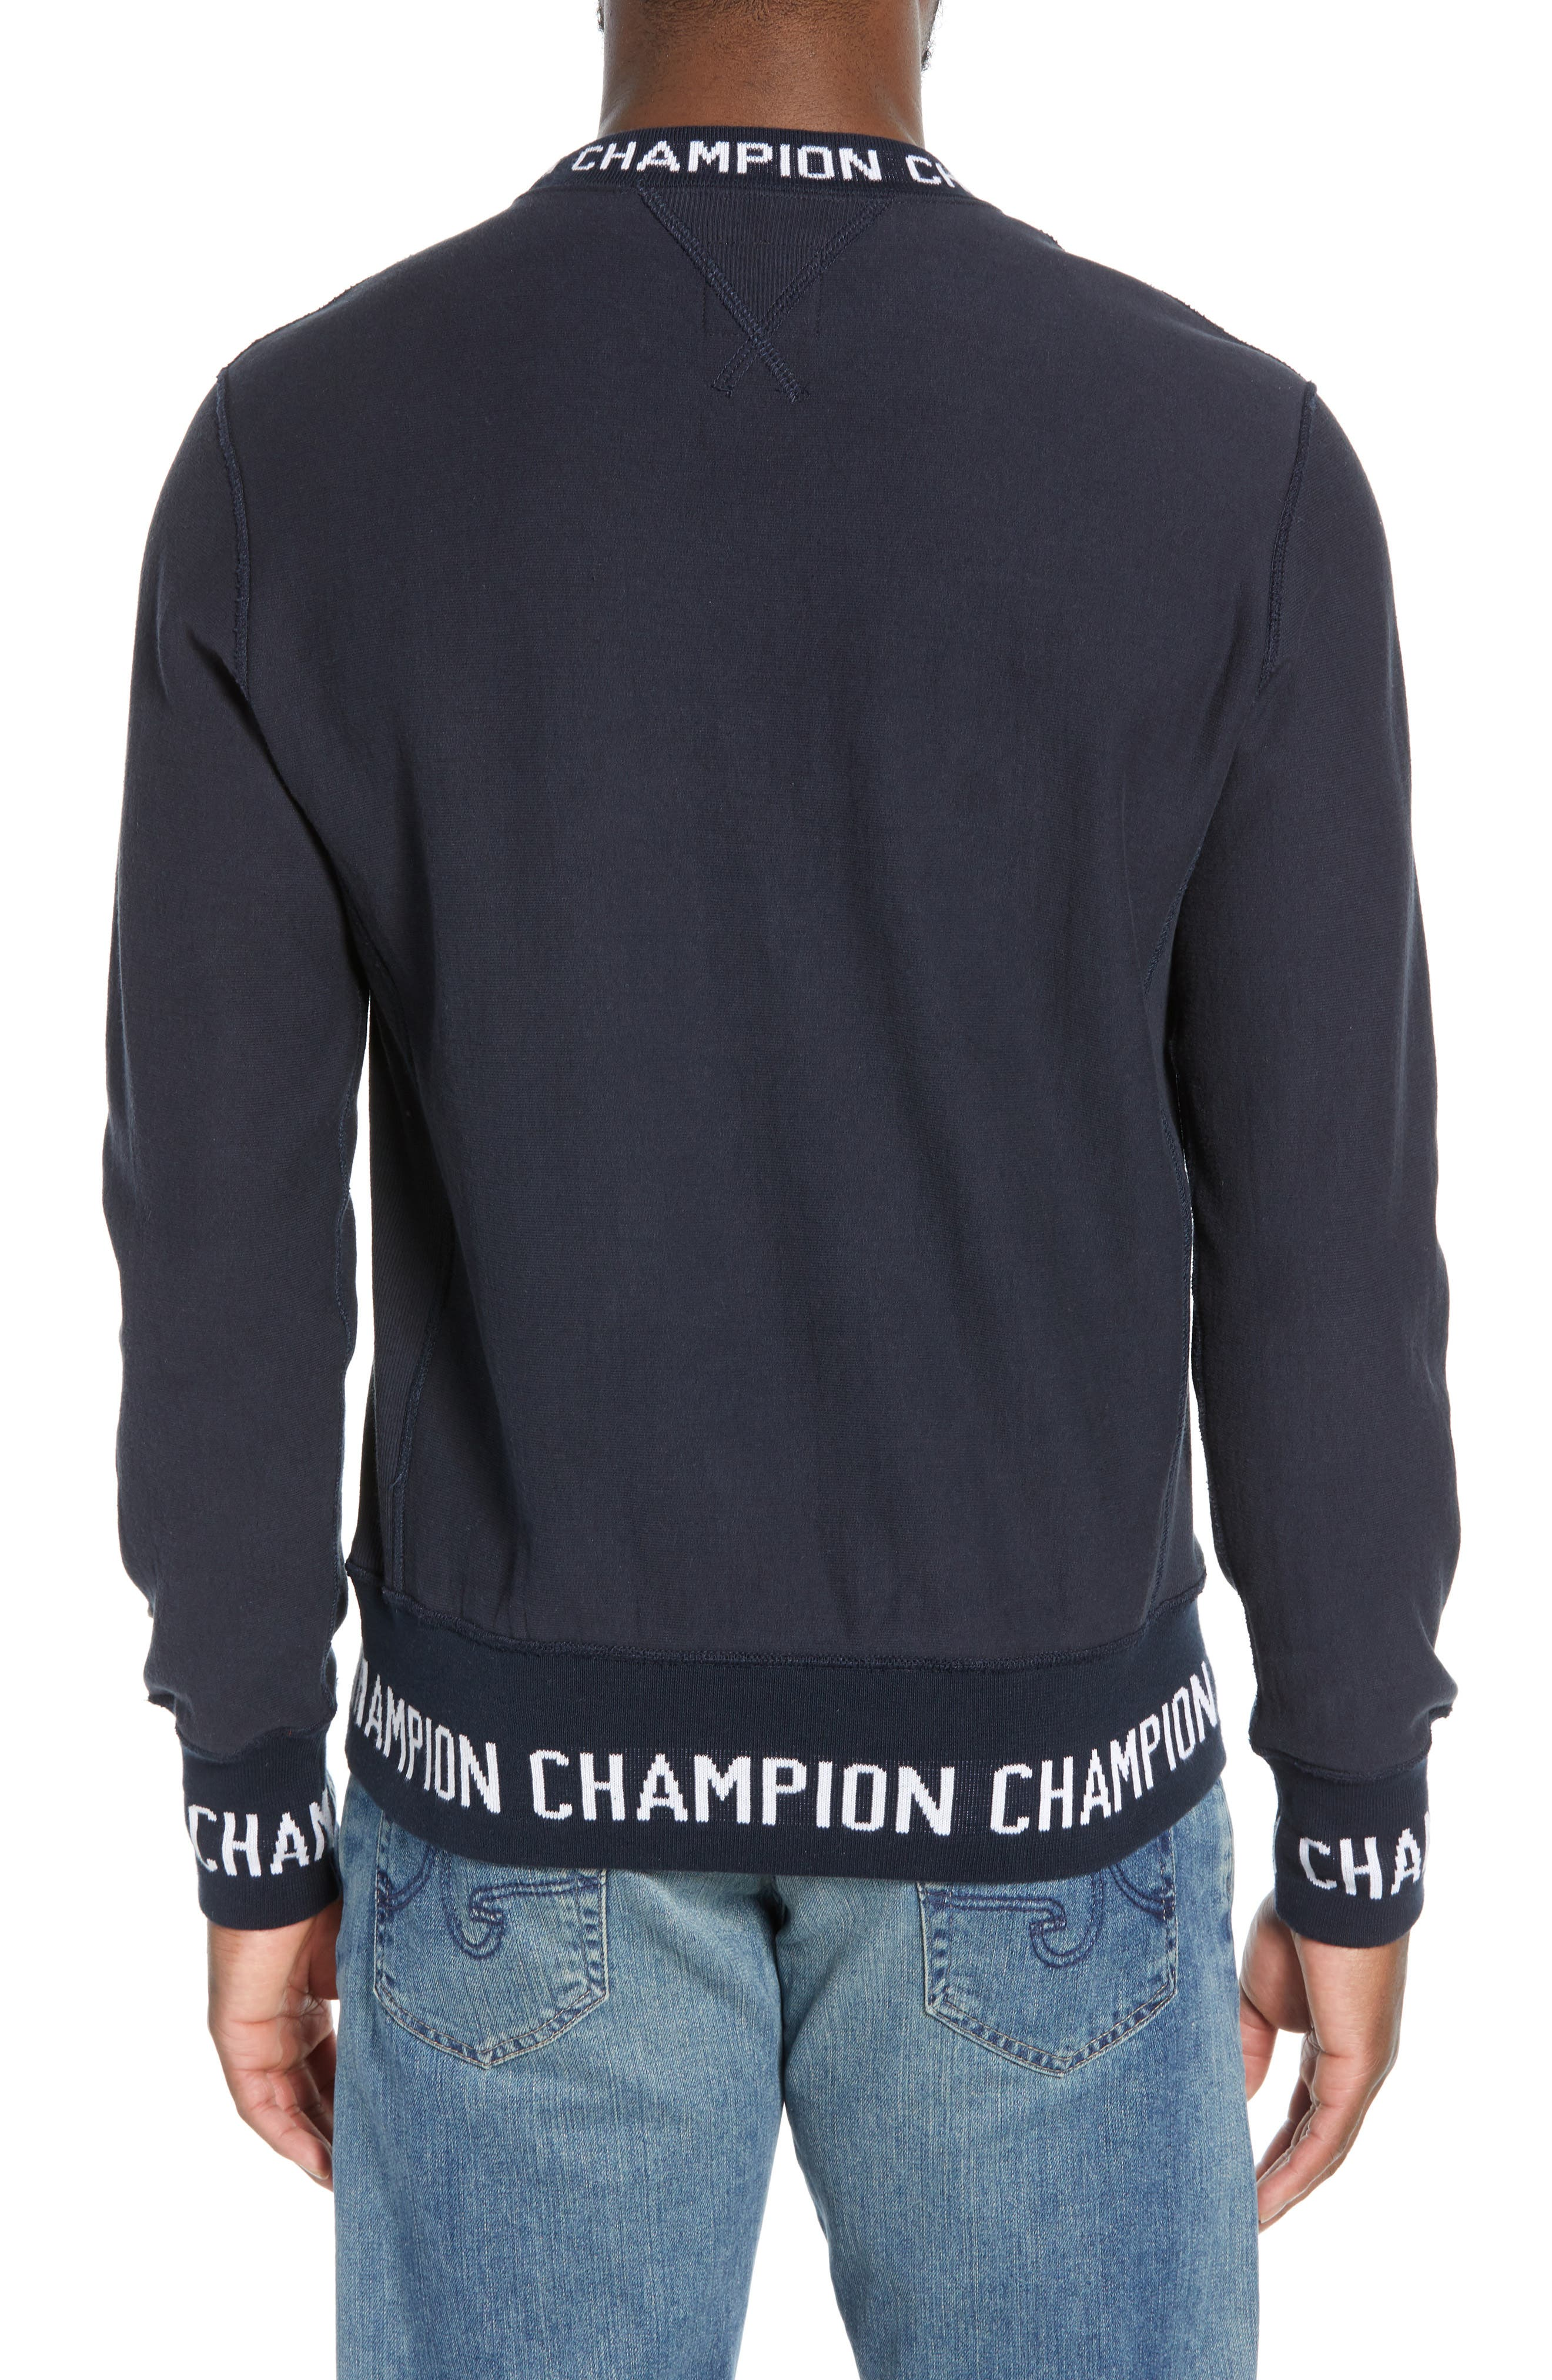 TODD SNYDER + CHAMPION, Todd Snyder x Champion Ribbed Logo Sweatshirt, Alternate thumbnail 2, color, NAVY